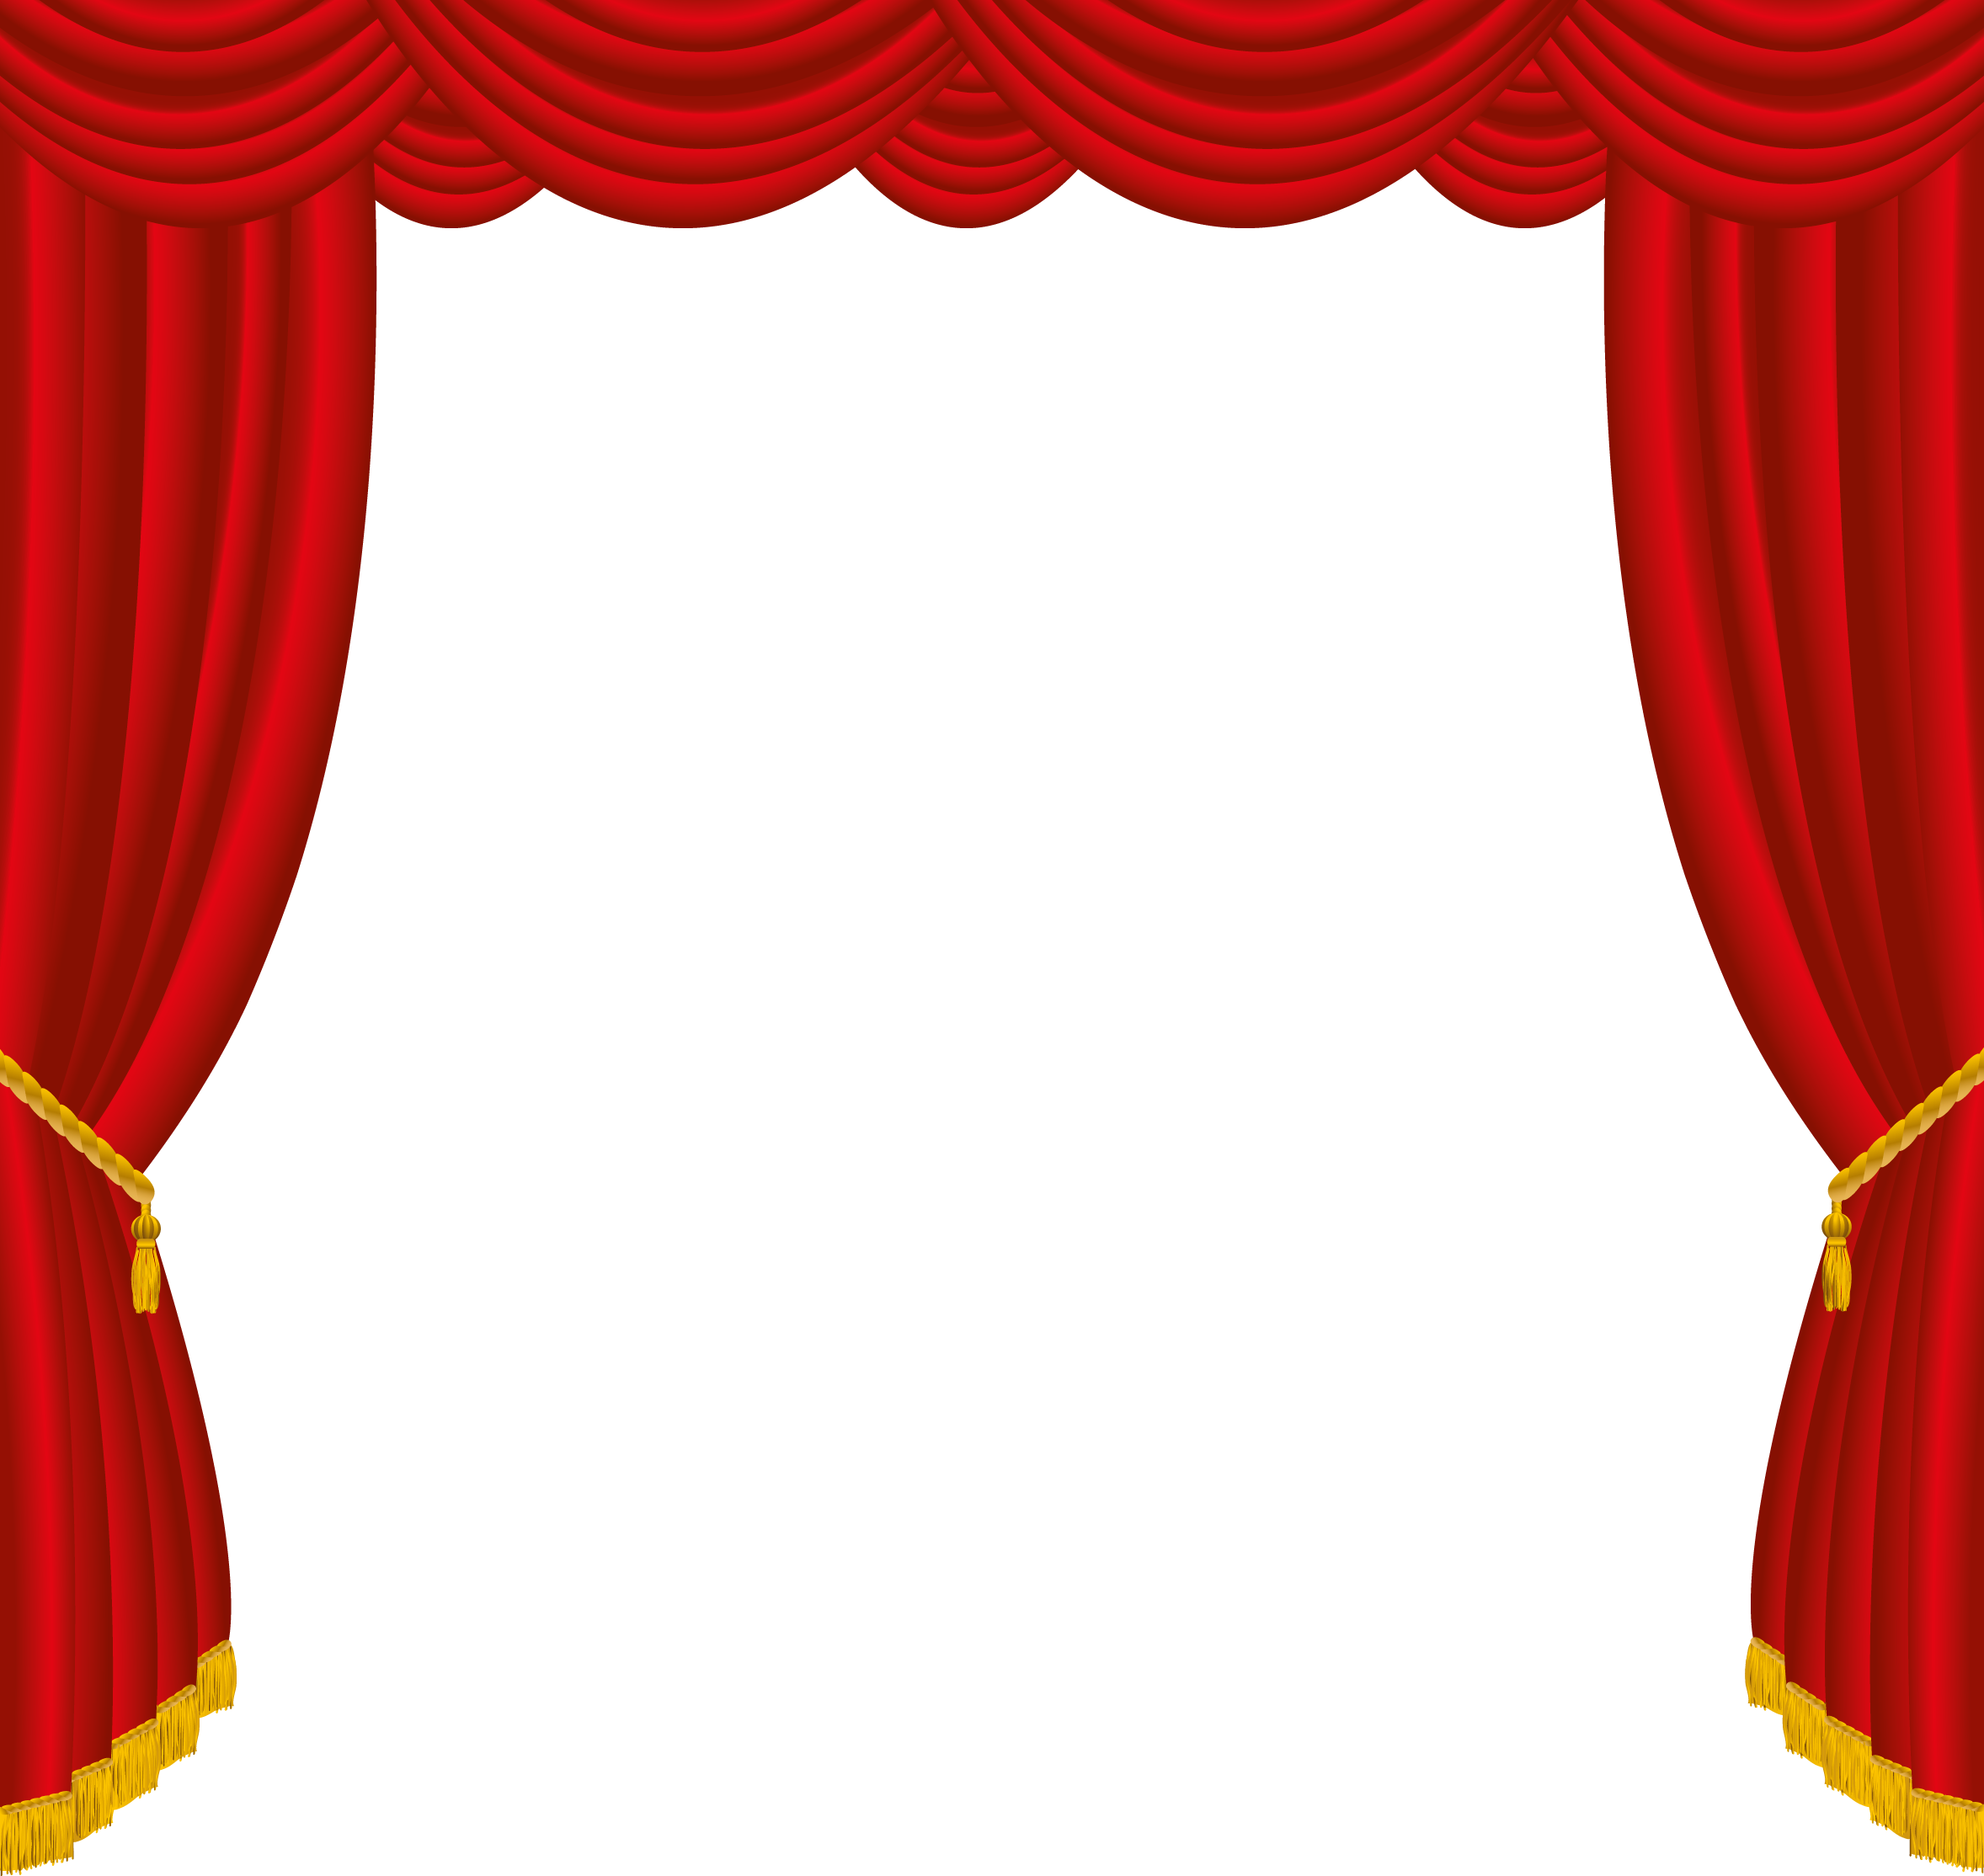 Curtains Png Image Curtain Decor Red Curtains Stage Curtains